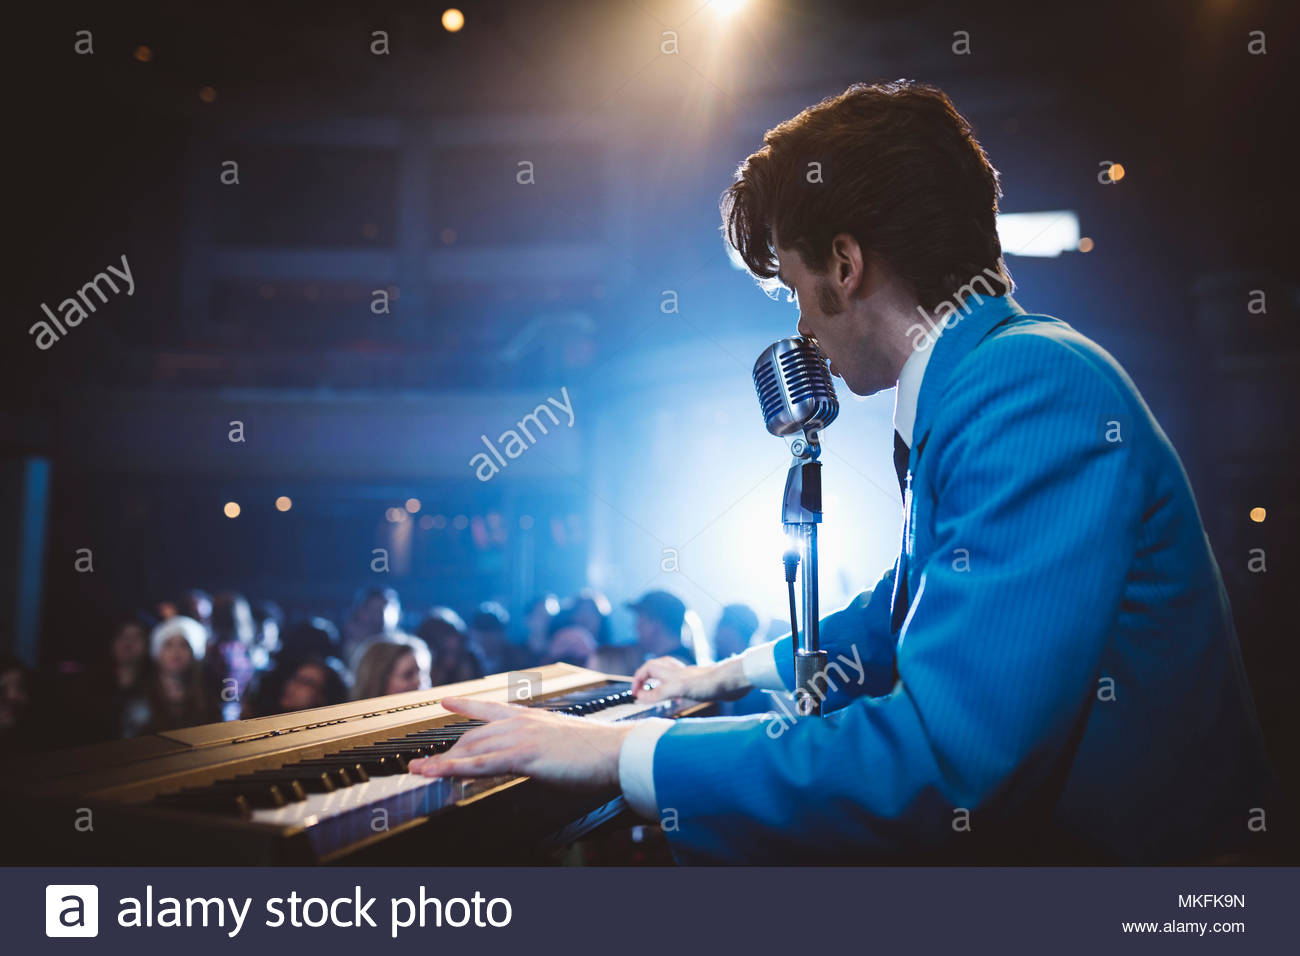 Rockabilly musician playing electric piano and singing into microphone at music concert - Stock Image